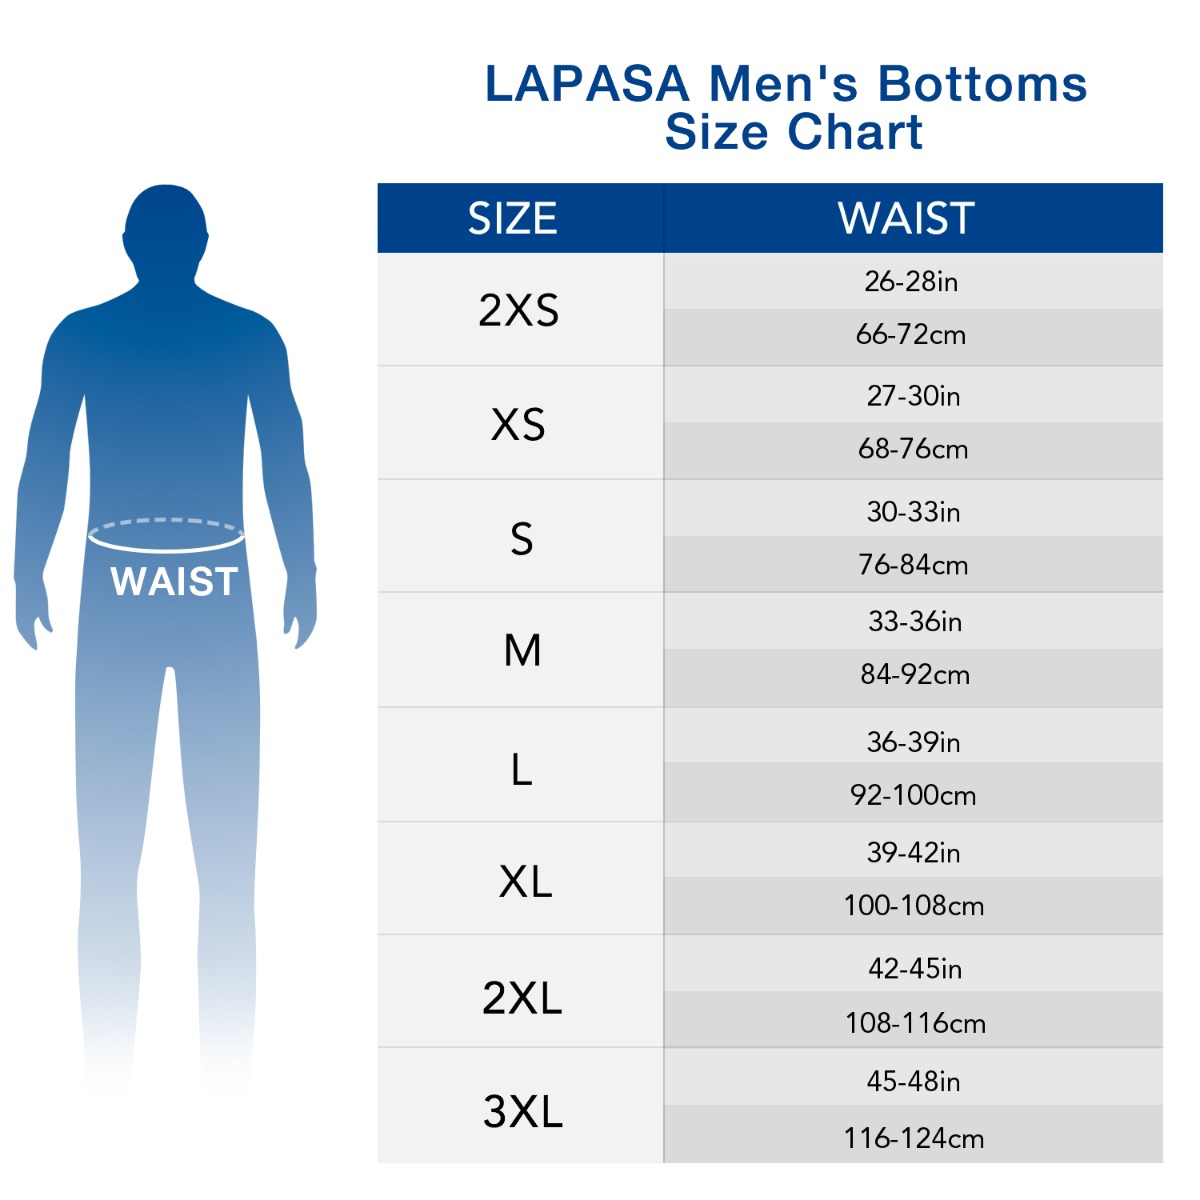 US men's bottom size chart